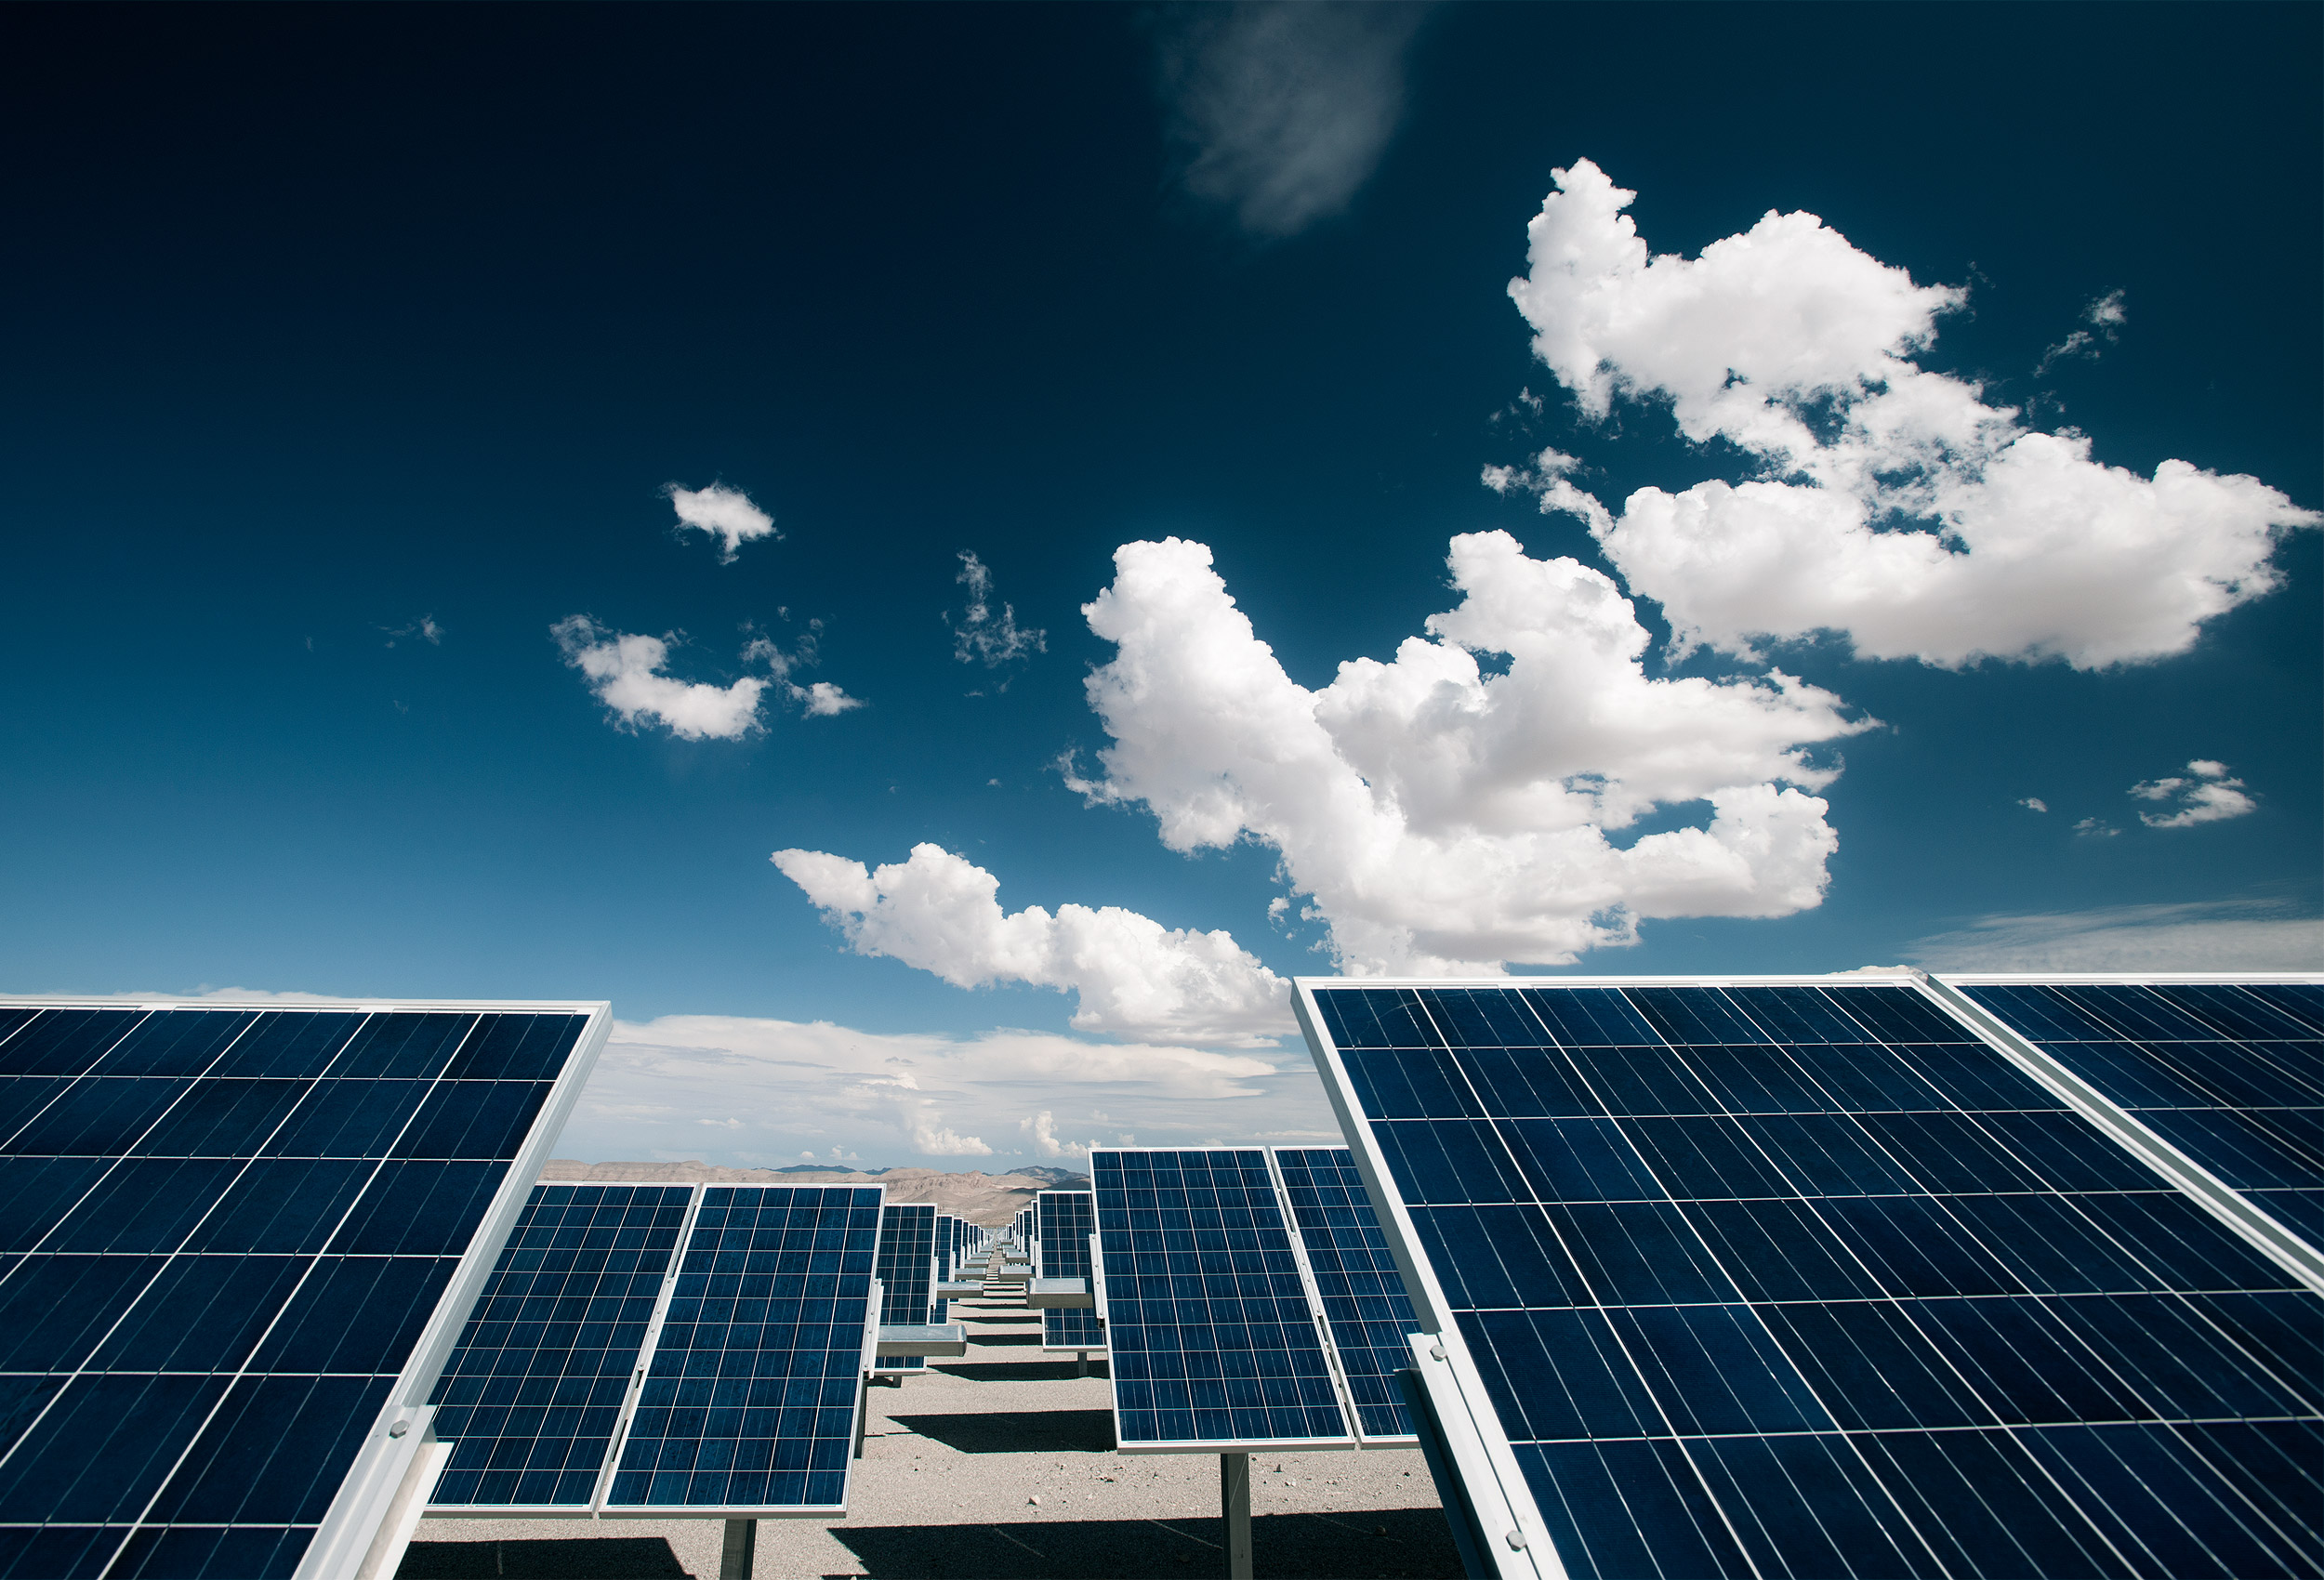 Solar farm by corporate industrial photographer Kristopher Grunert